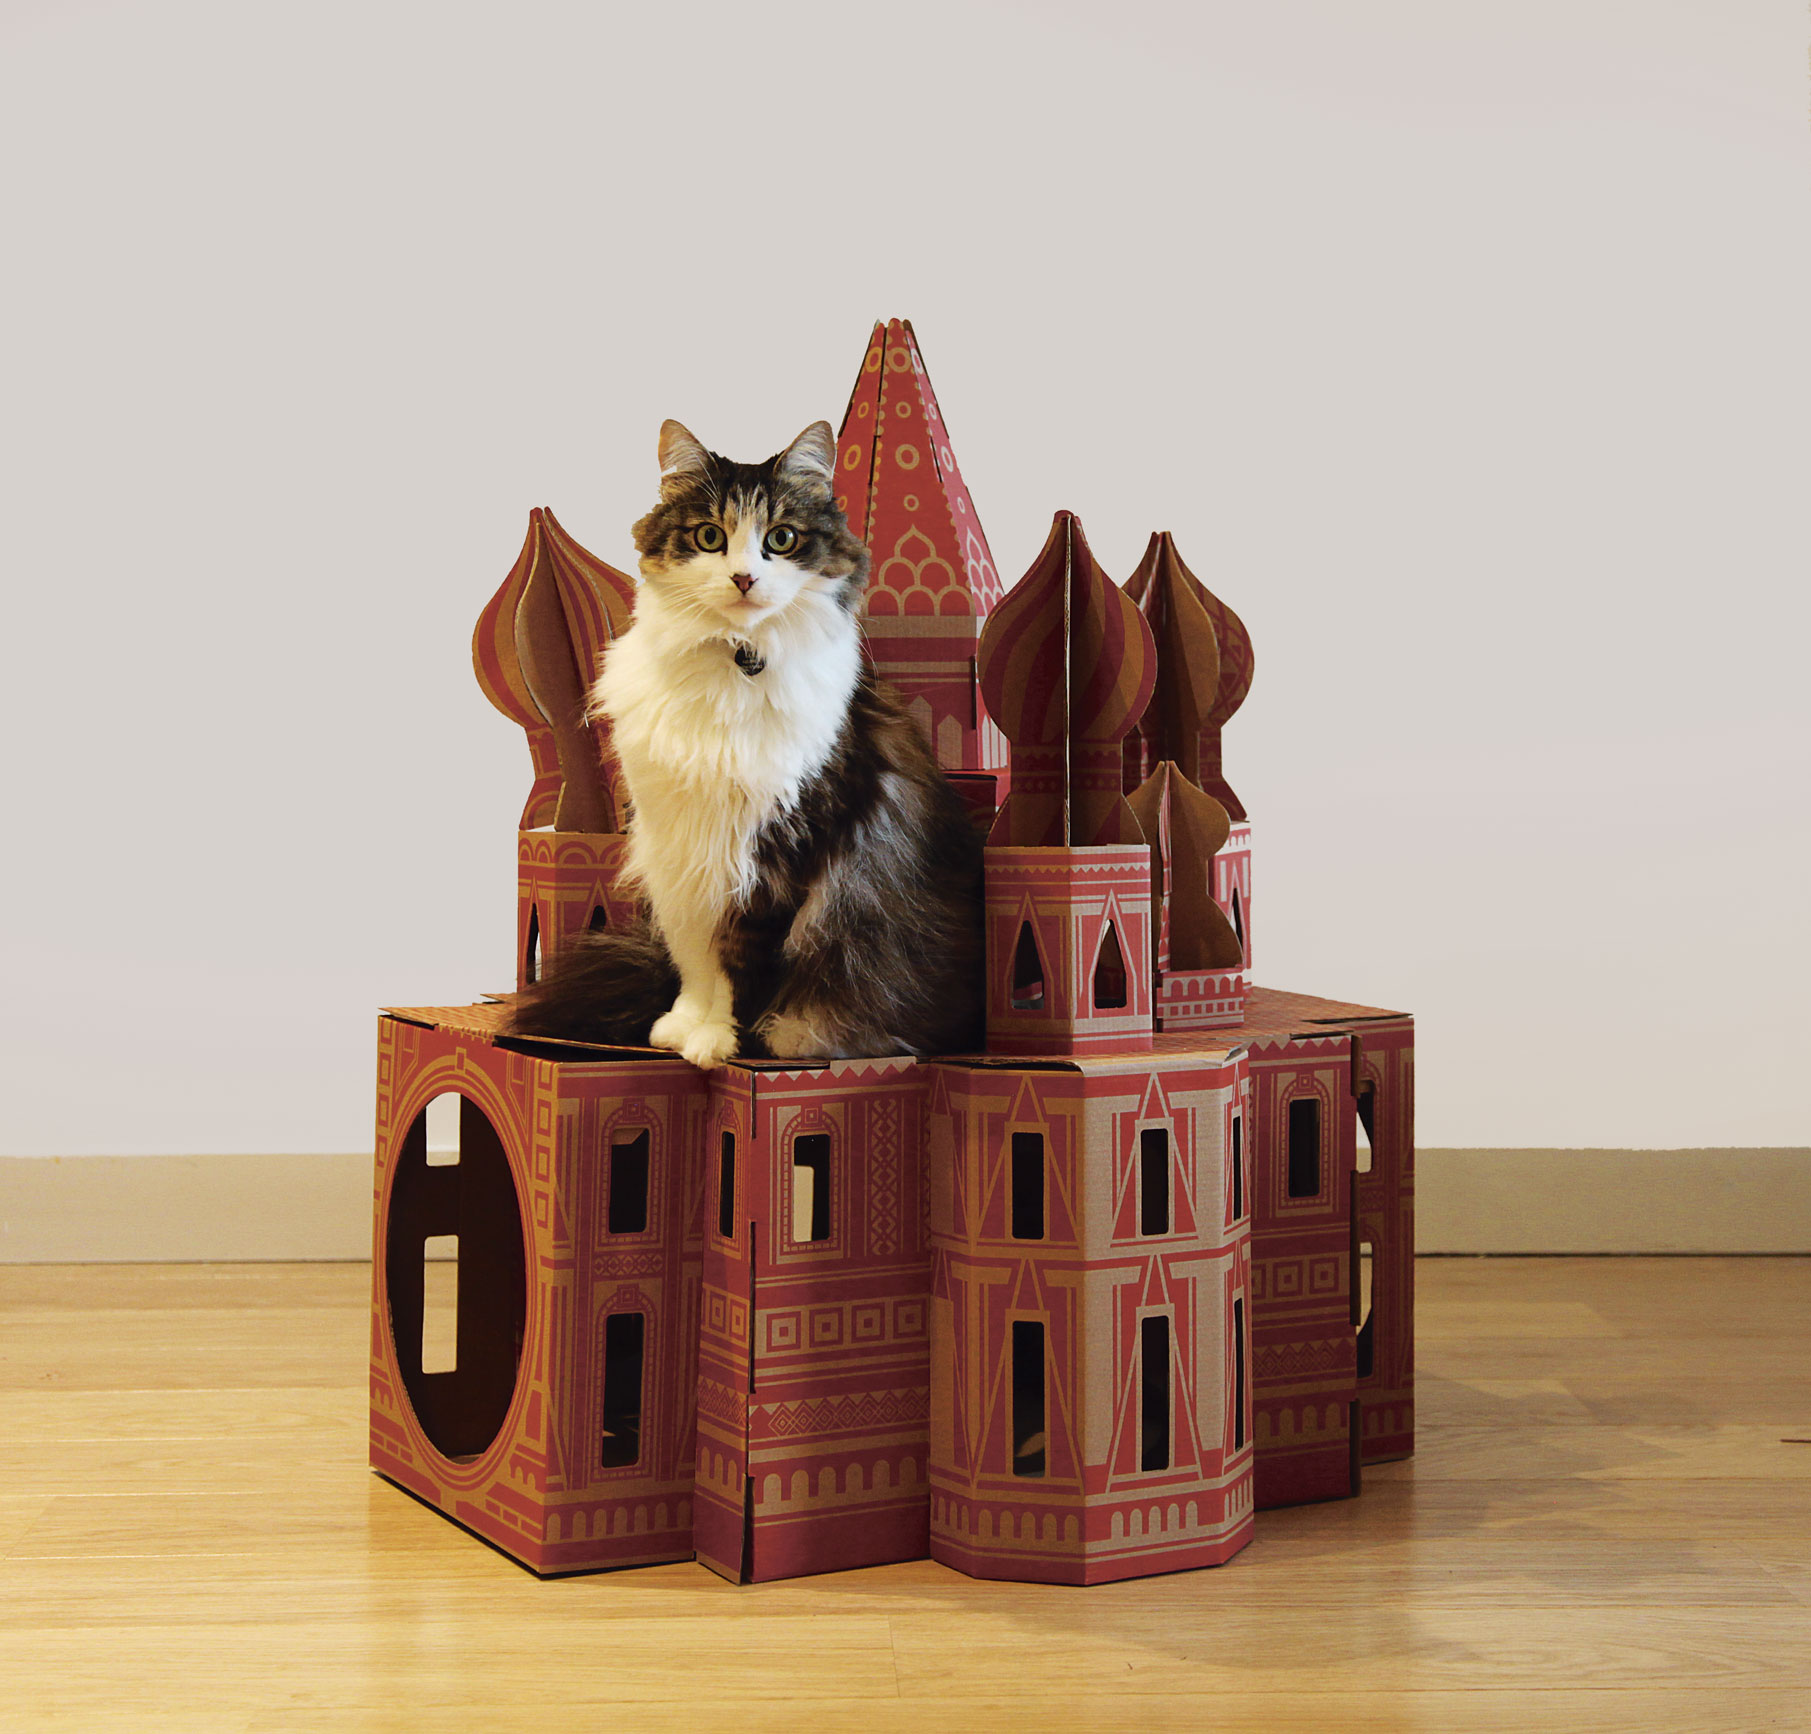 Lily poses on Landmarks by Poopy Cat from Pet-tecture